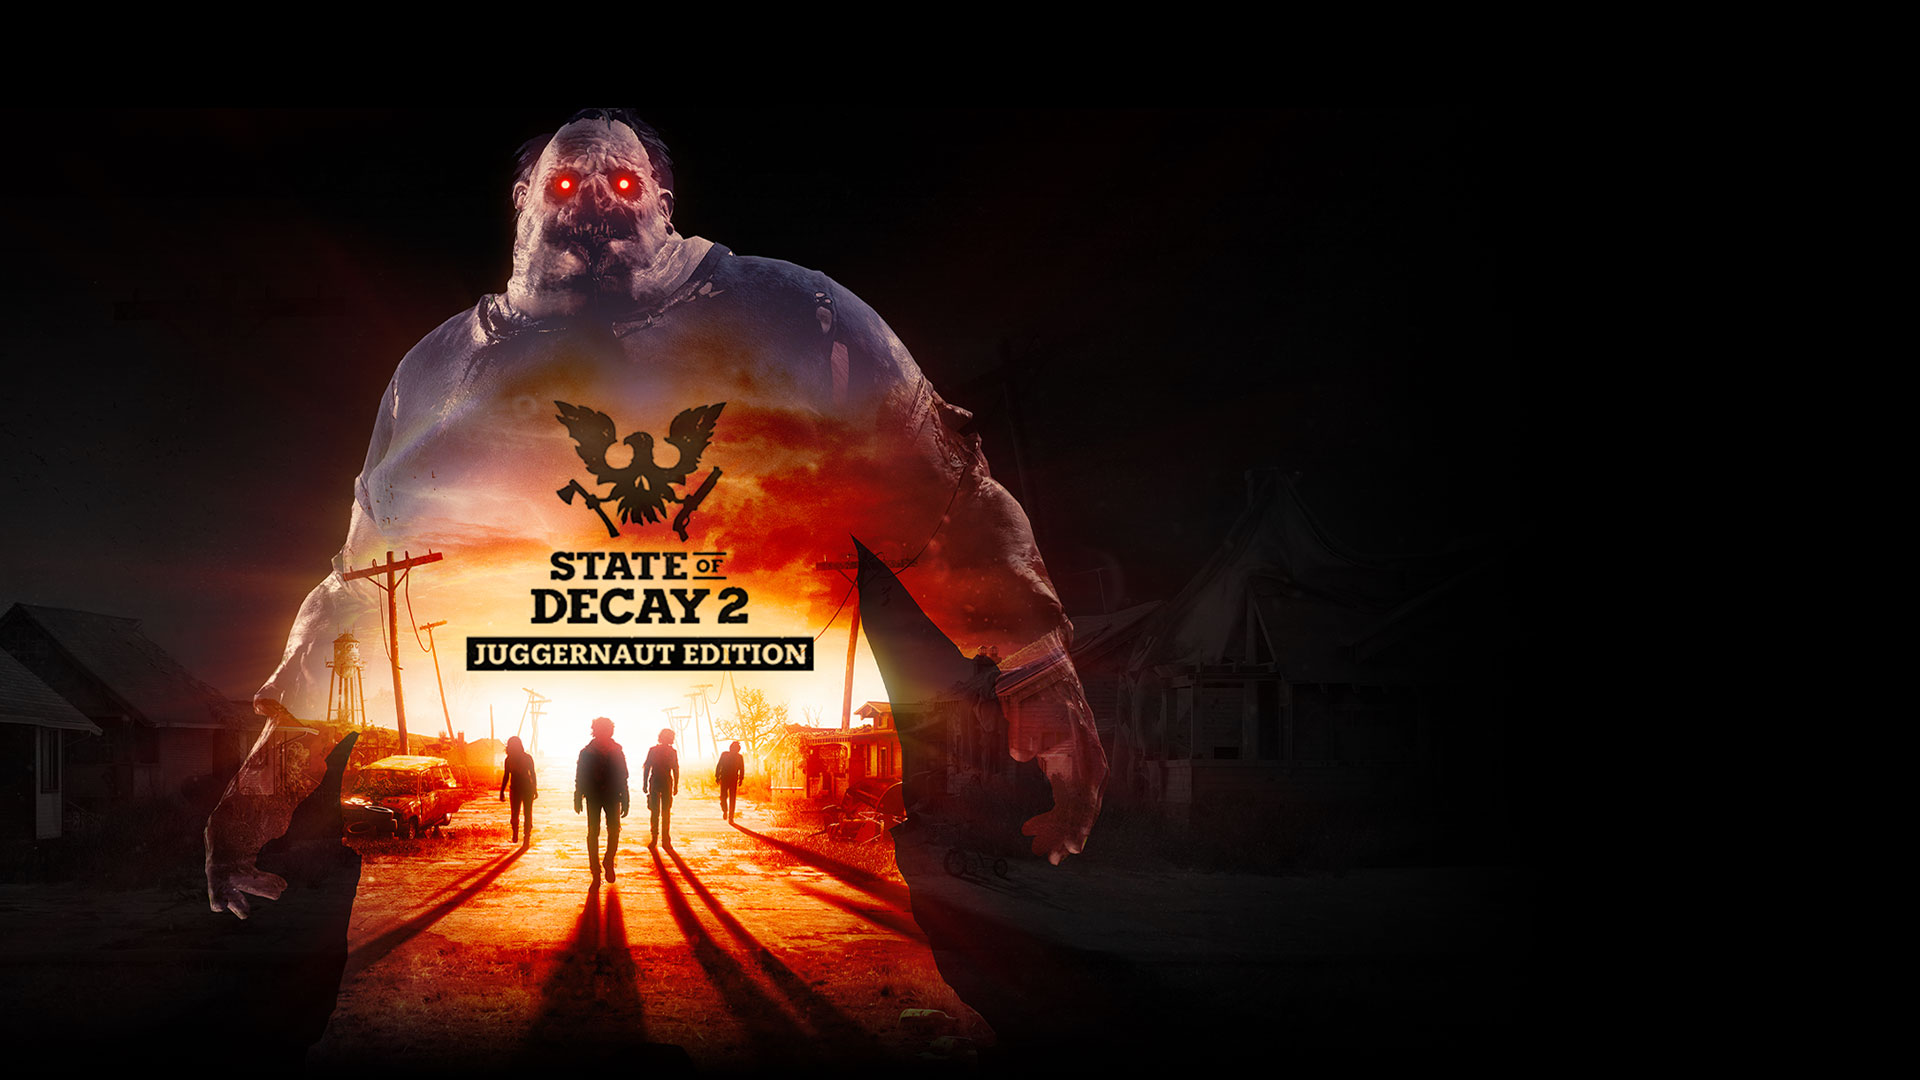 O State of Decay 2: Juggernaut Edition, silhueta do Juggernaut com zombies numa rua abandonada